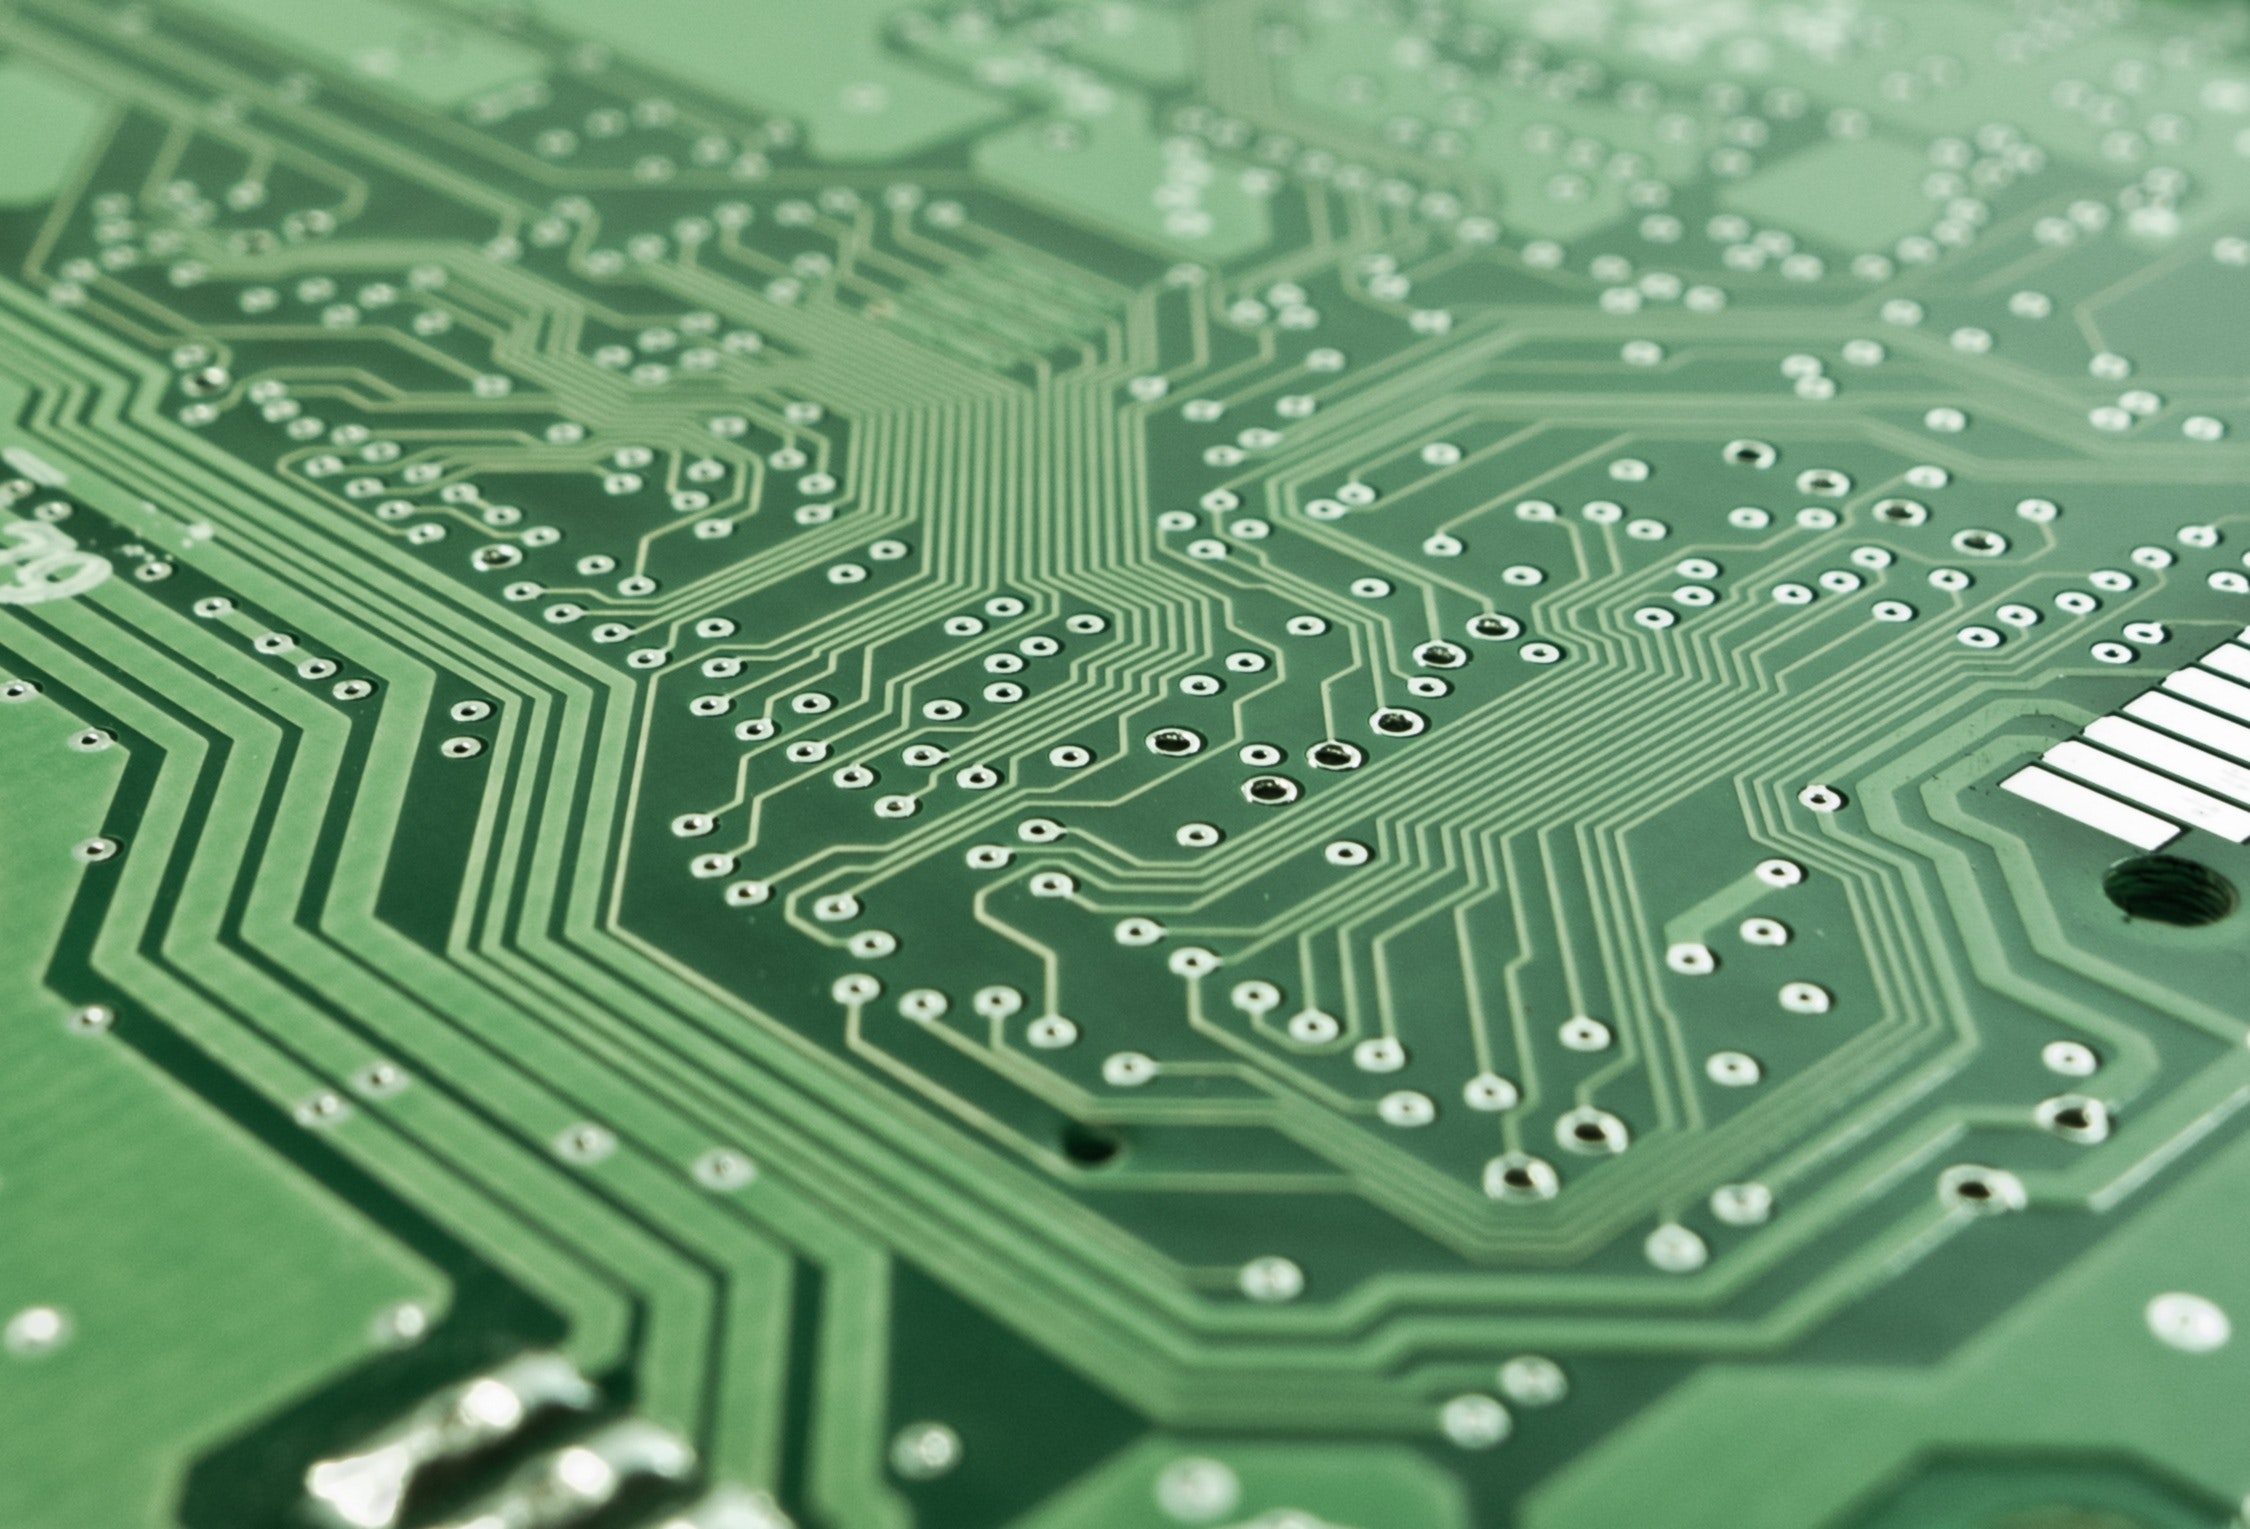 Technology Images Pexels Free Stock Photos Simple Circuit Board Design Galleryhipcom The Hippest Galleries Fetching More